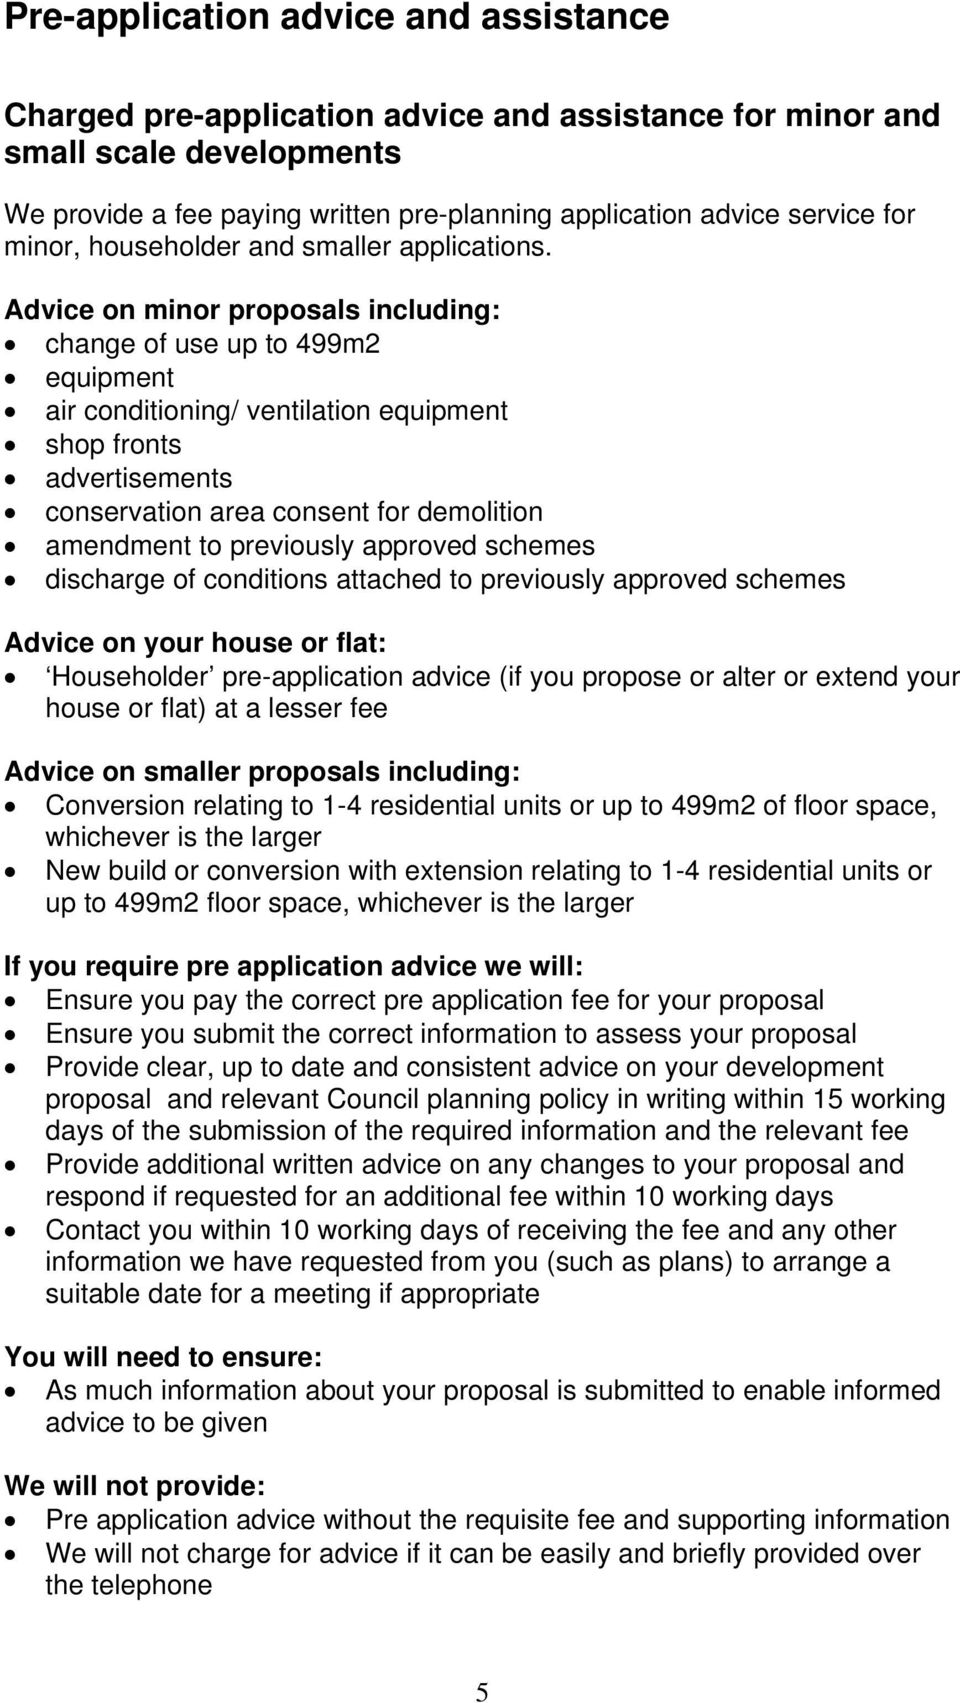 Advice on minor proposals including: change of use up to 499m2 equipment air conditioning/ ventilation equipment shop fronts advertisements conservation area consent for demolition amendment to